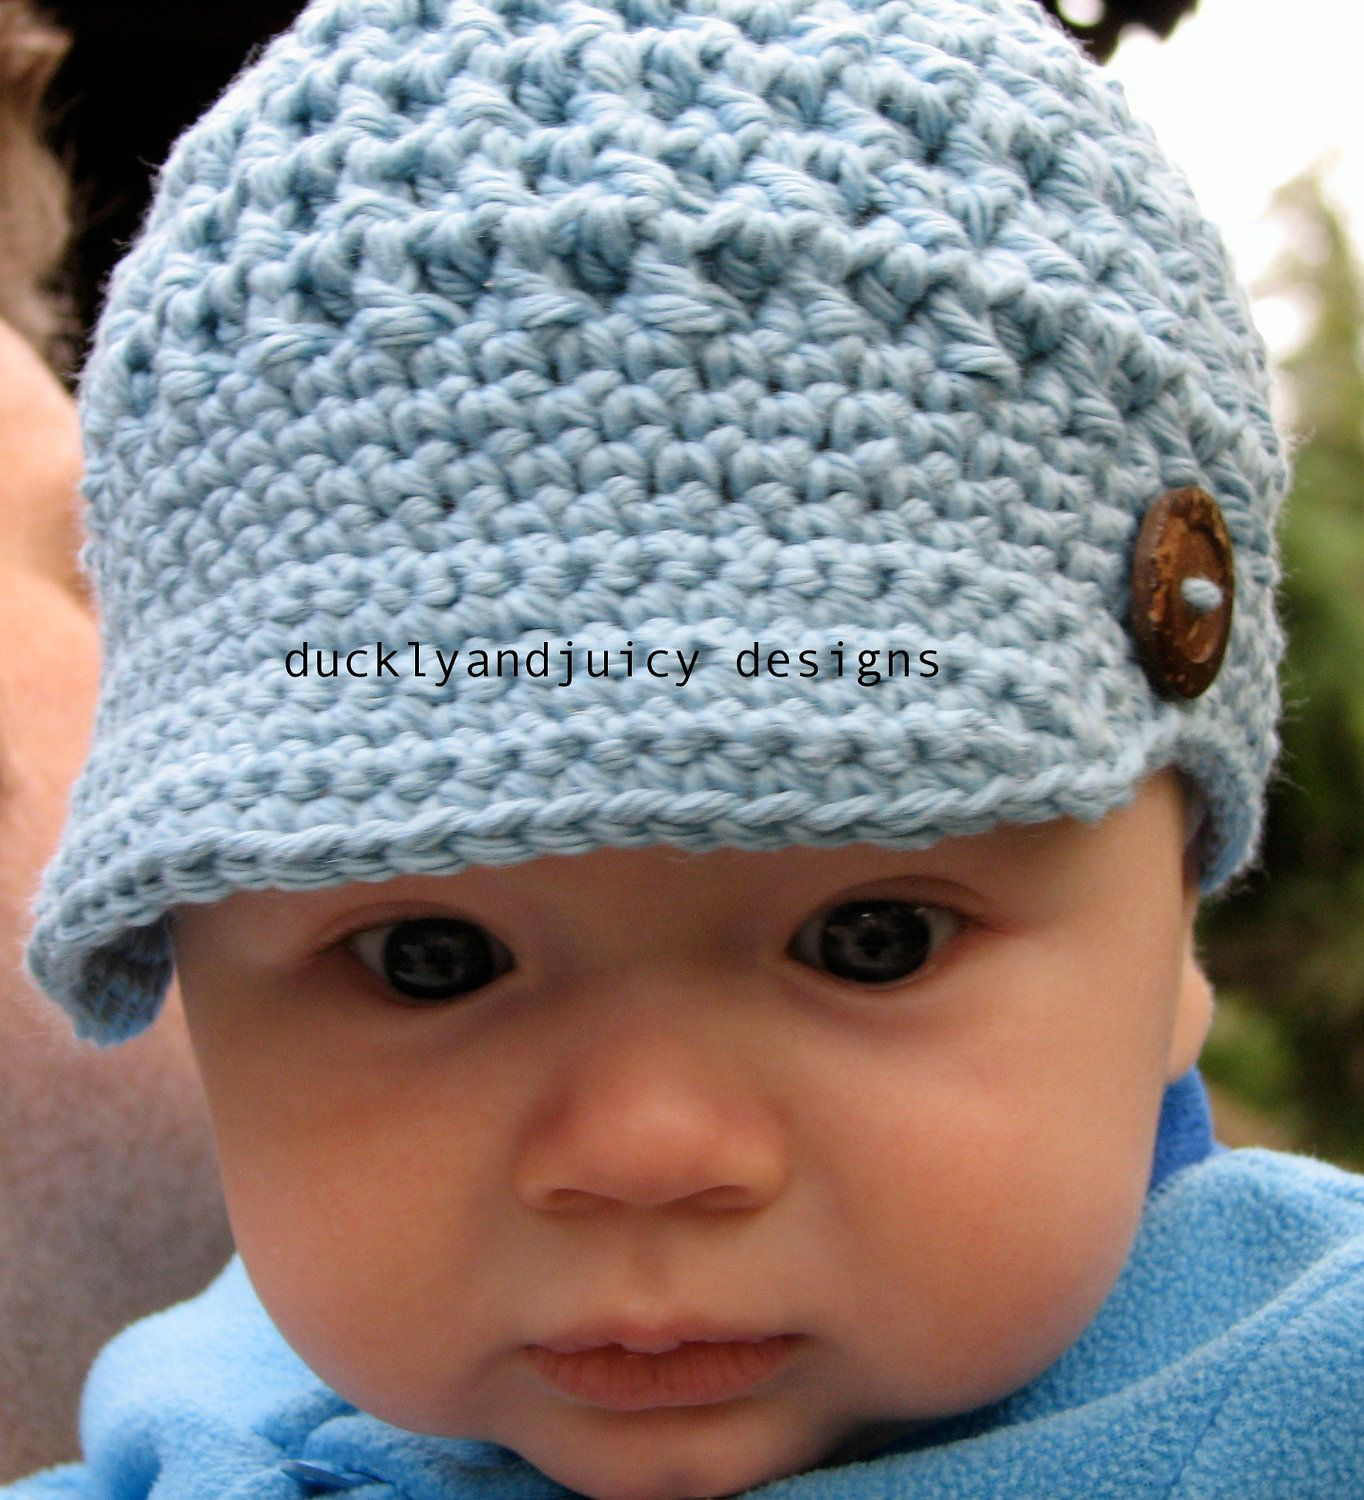 6f0a9ceec65 Crochet Baby Hat - Baby Boy Hat - Newsboy Cap with Brim and Button ...